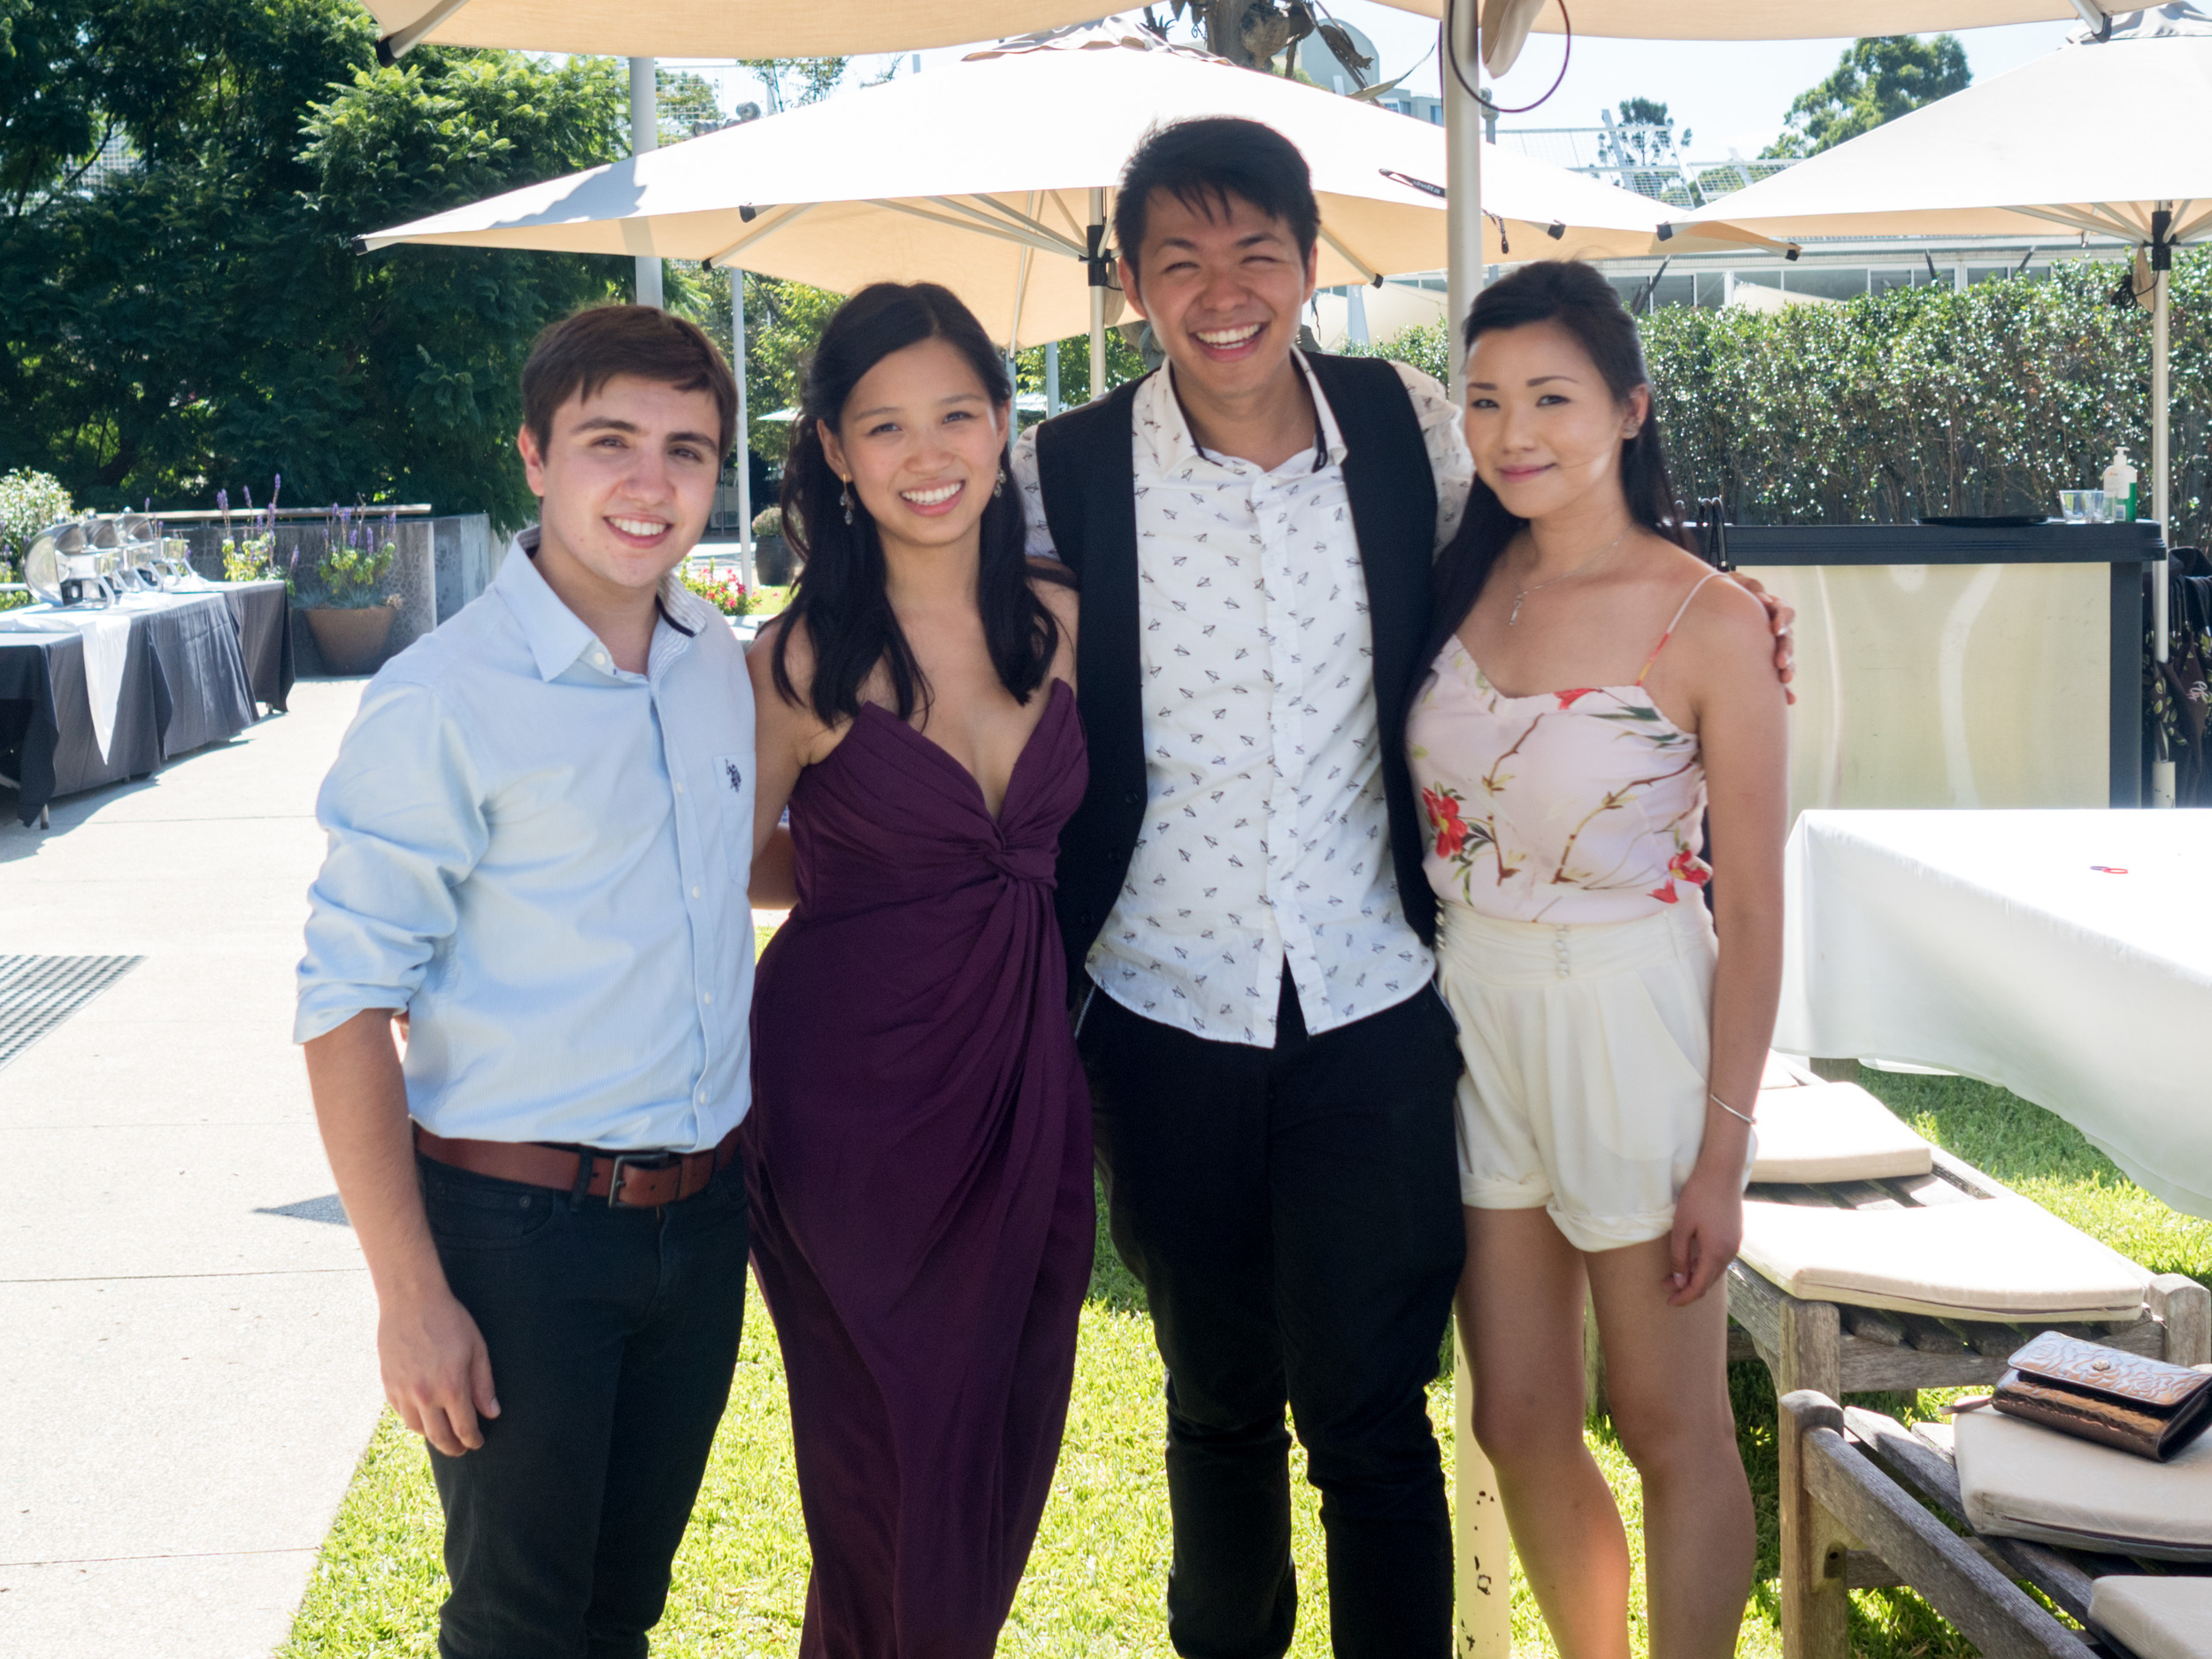 Olivia's Engagement Party